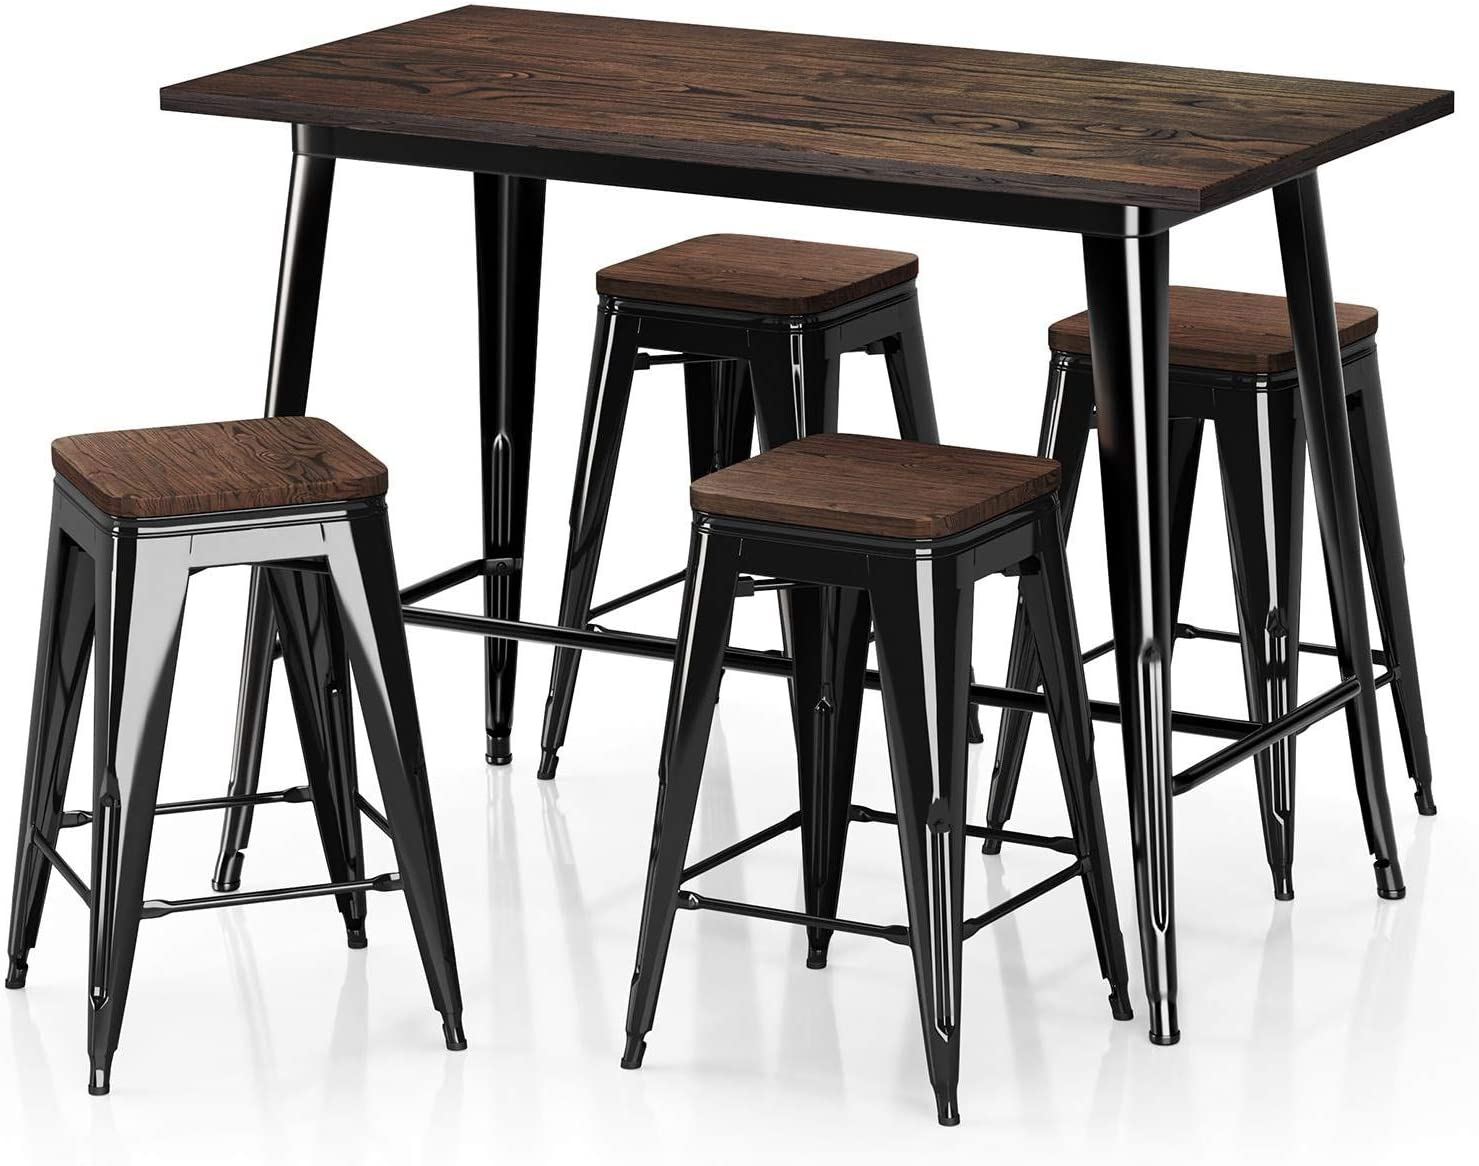 Dining Table 24 Stools Sets, Heavy Duty Dining Room Furniture